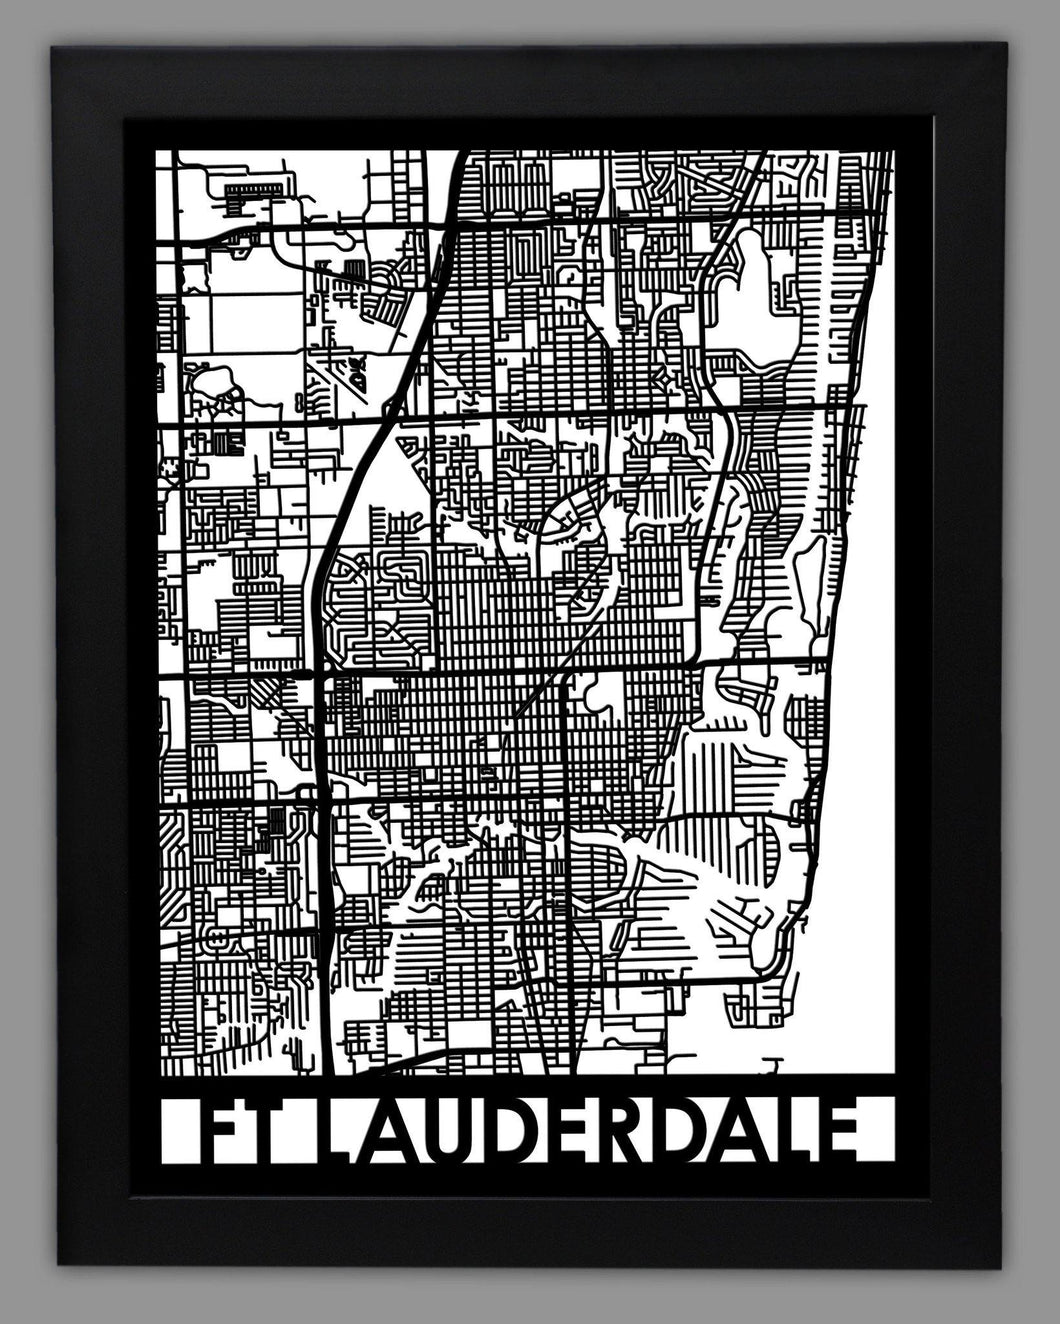 Fort Lauderdale - Cool Cut Map Gift